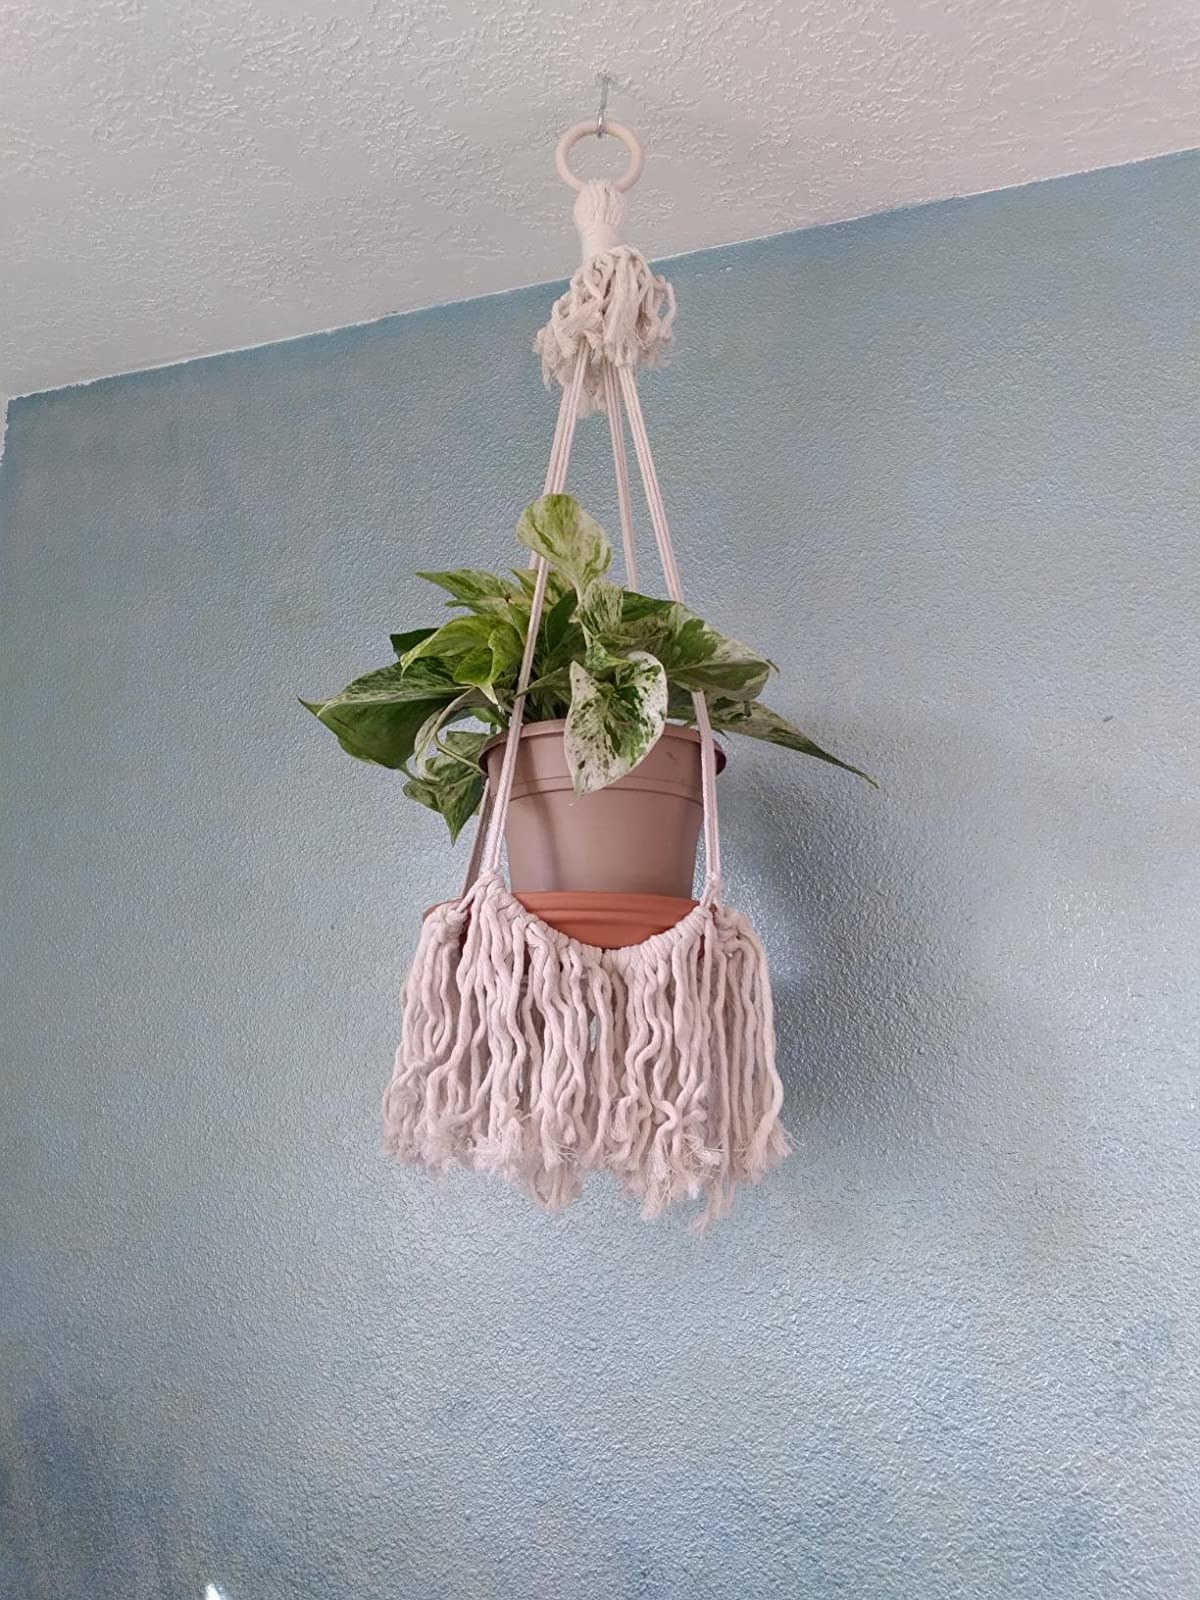 A reviewer's hanger with a fringe bottom and a plant on it